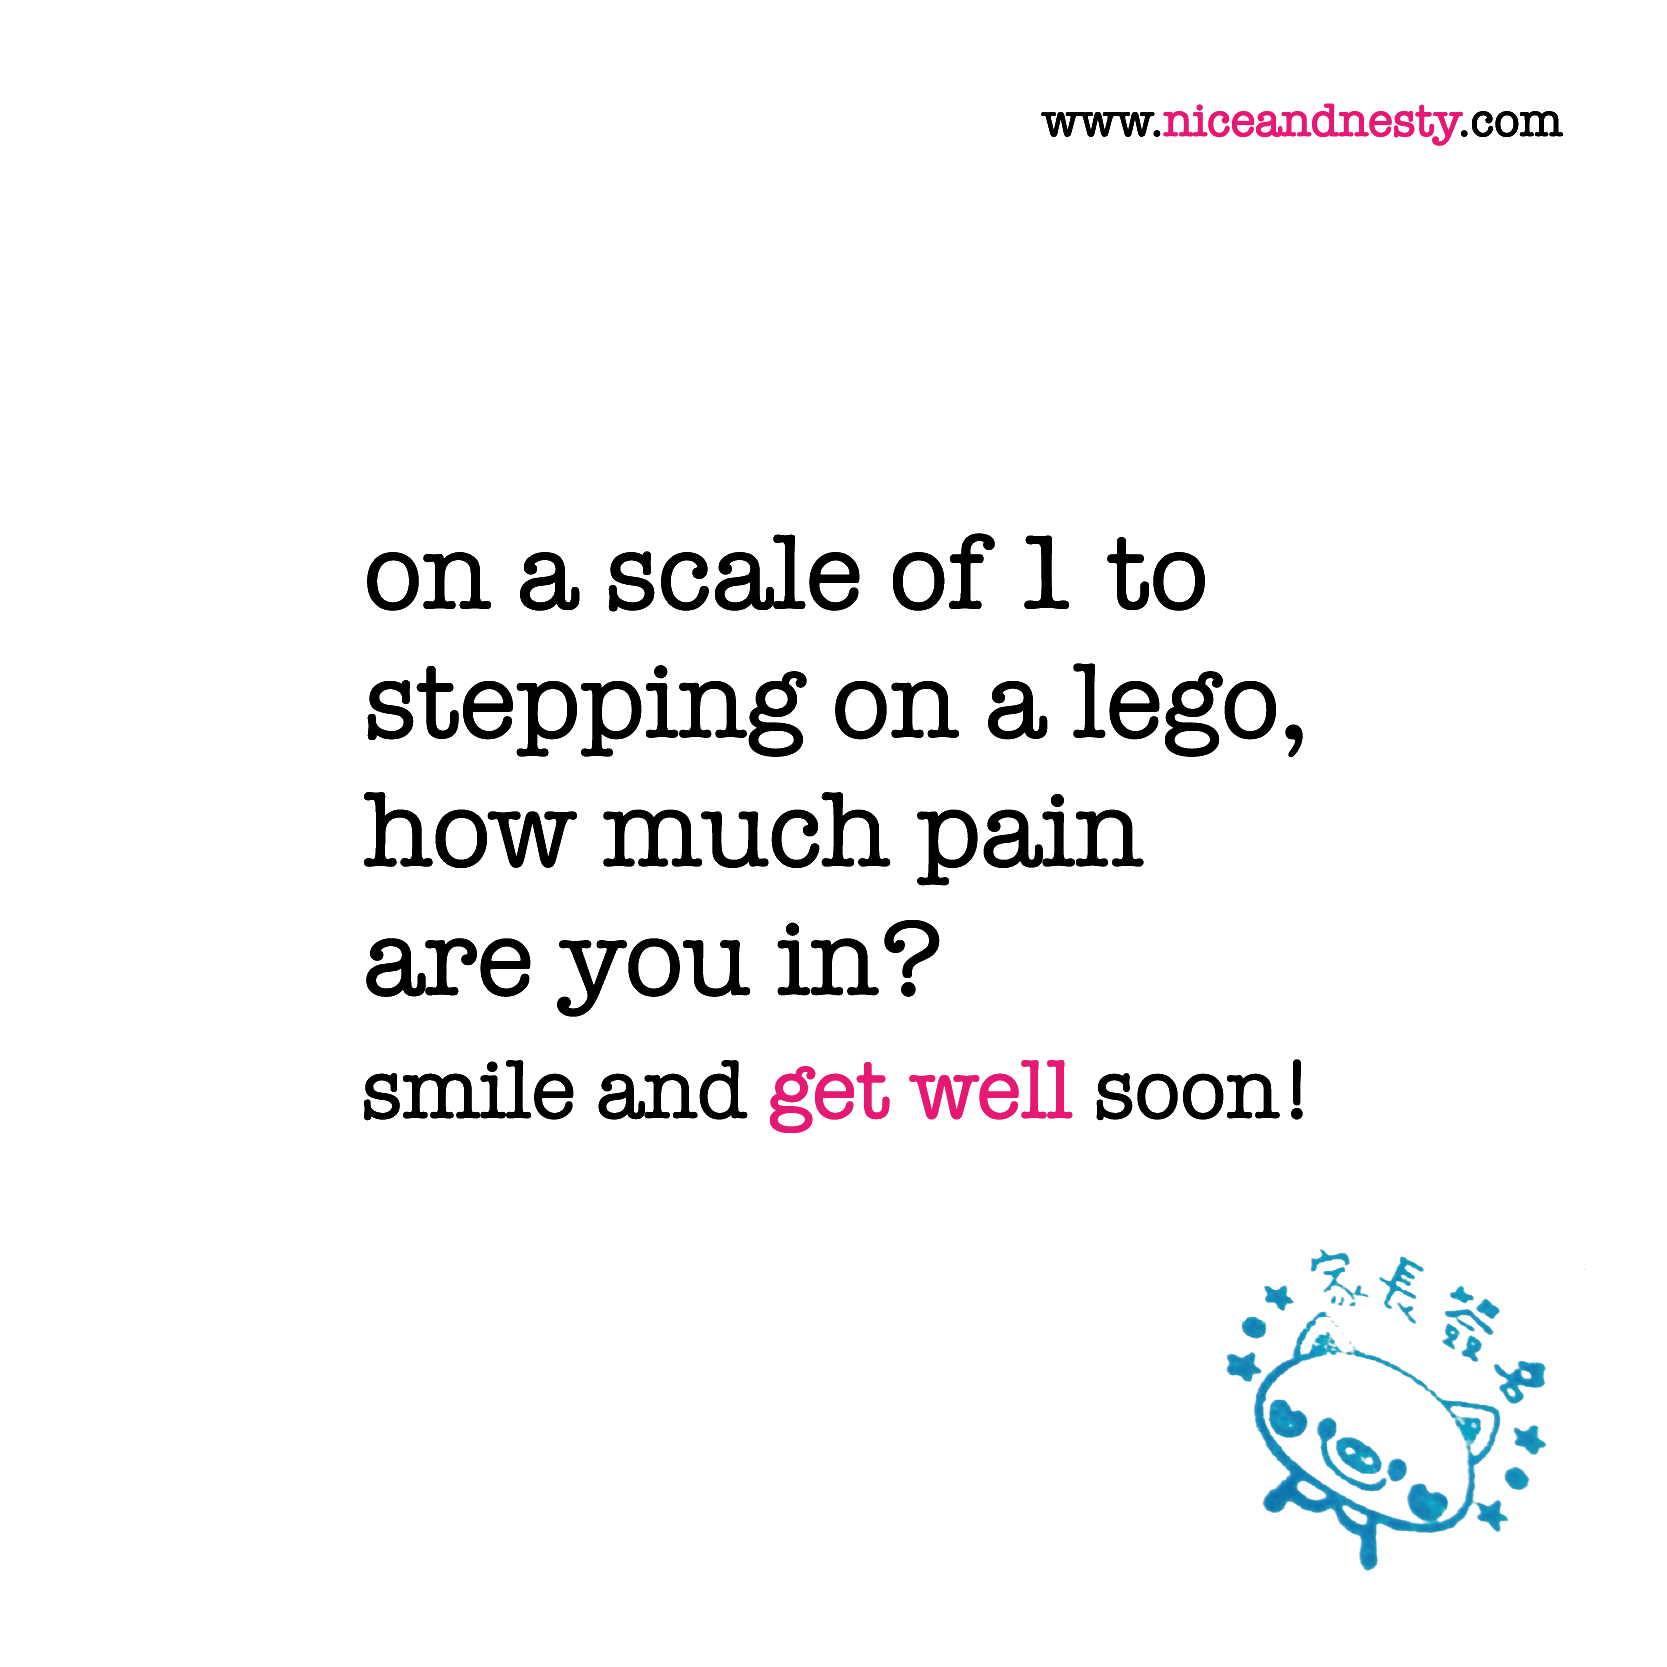 Get Better Quotes Funny: On A Scale Of 1 To Stepping On A Lego, How Much Pain Are